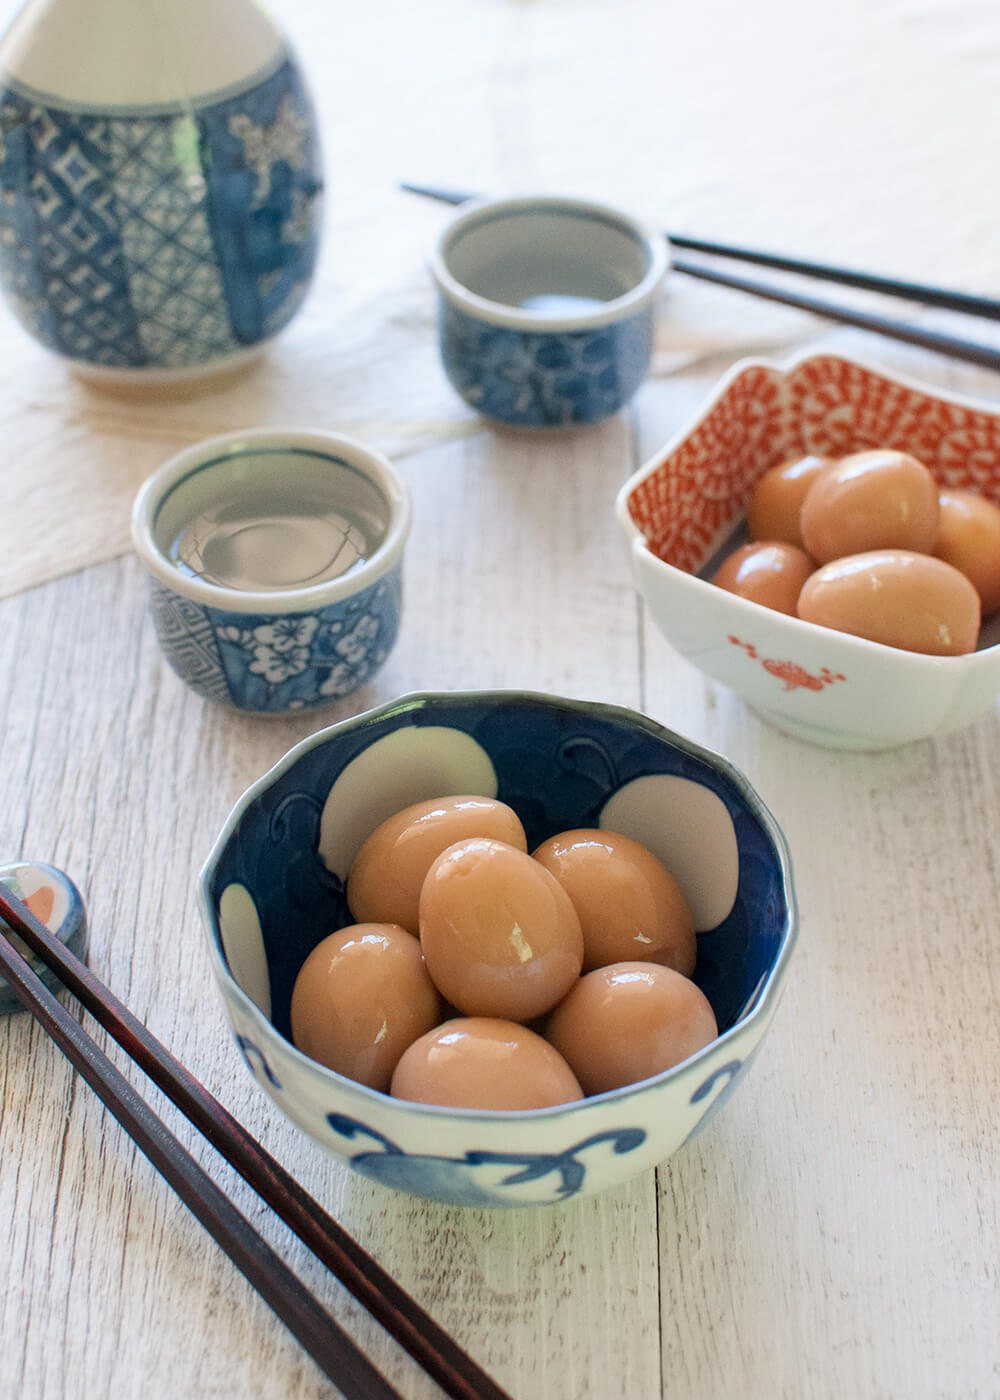 Marinated Quail Eggs are often served at izakaya (Japanese-style tavern) as a small appetiser as soon as you are seated. Marinated in sweet soy-flavoured sauce, they are surprisingly tasty and also surprisingly easy to make.